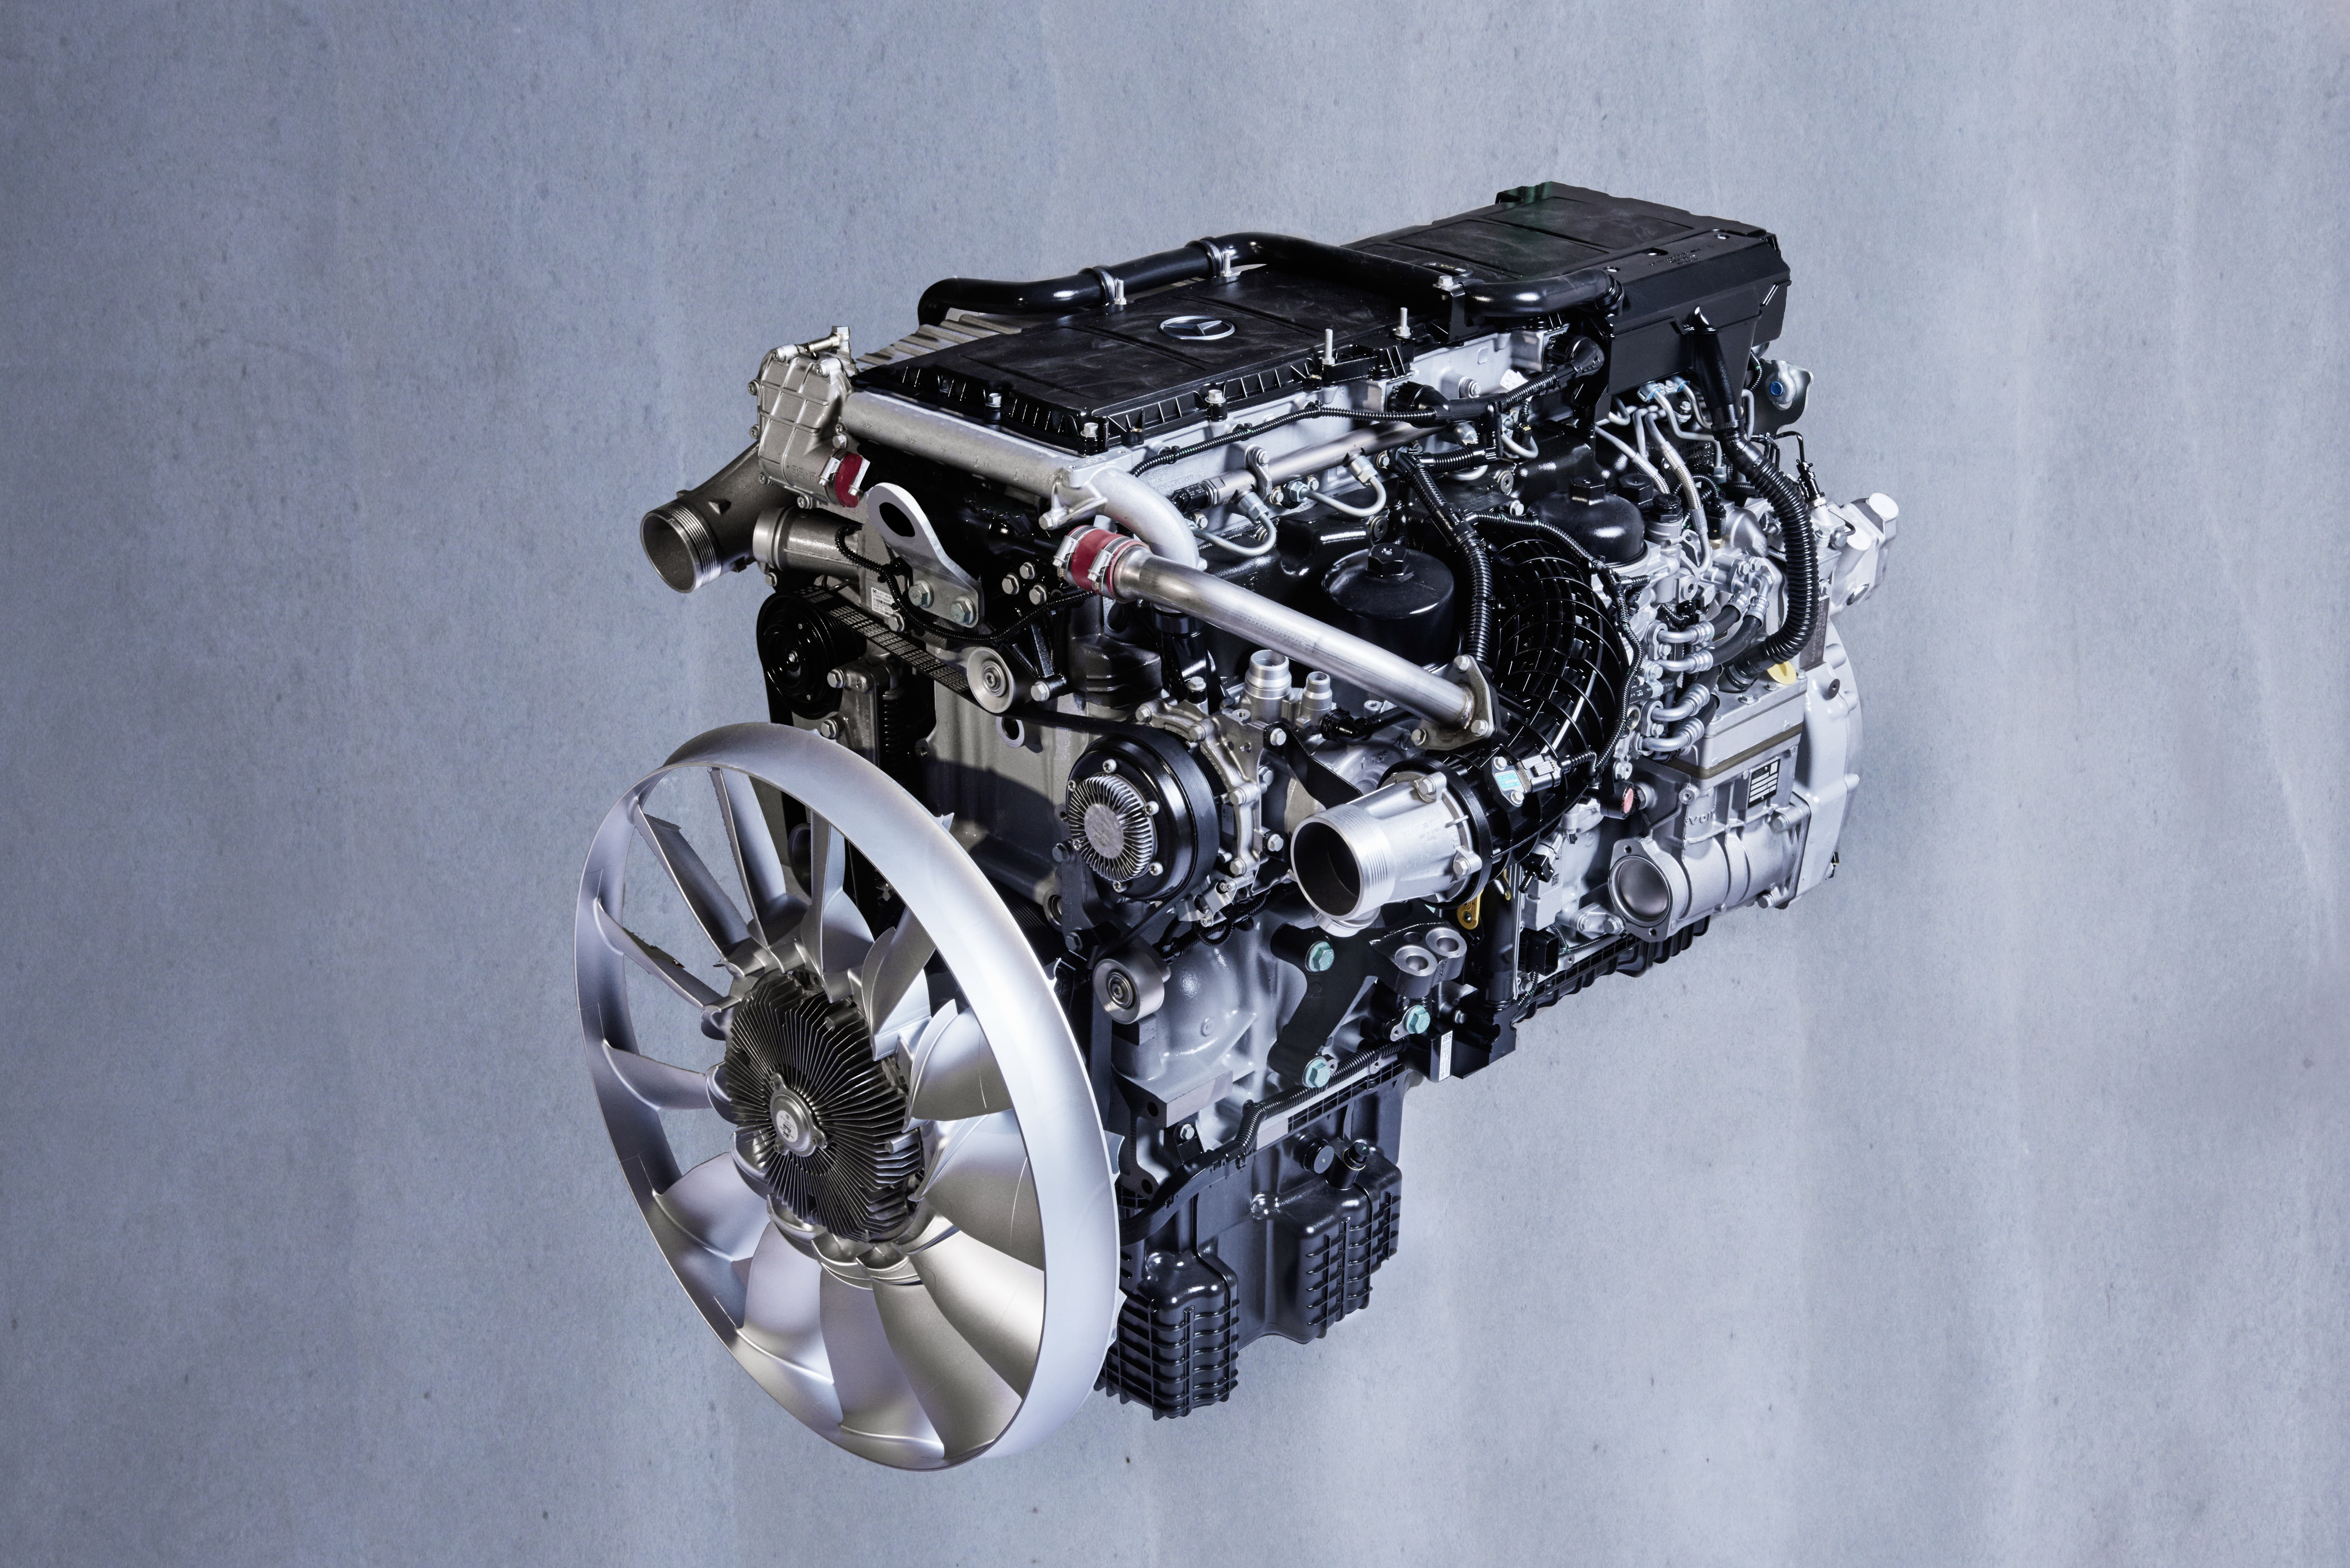 Mercedes-benz Updated 13-liter And The Next Detroit Diesel Generation - Equipment